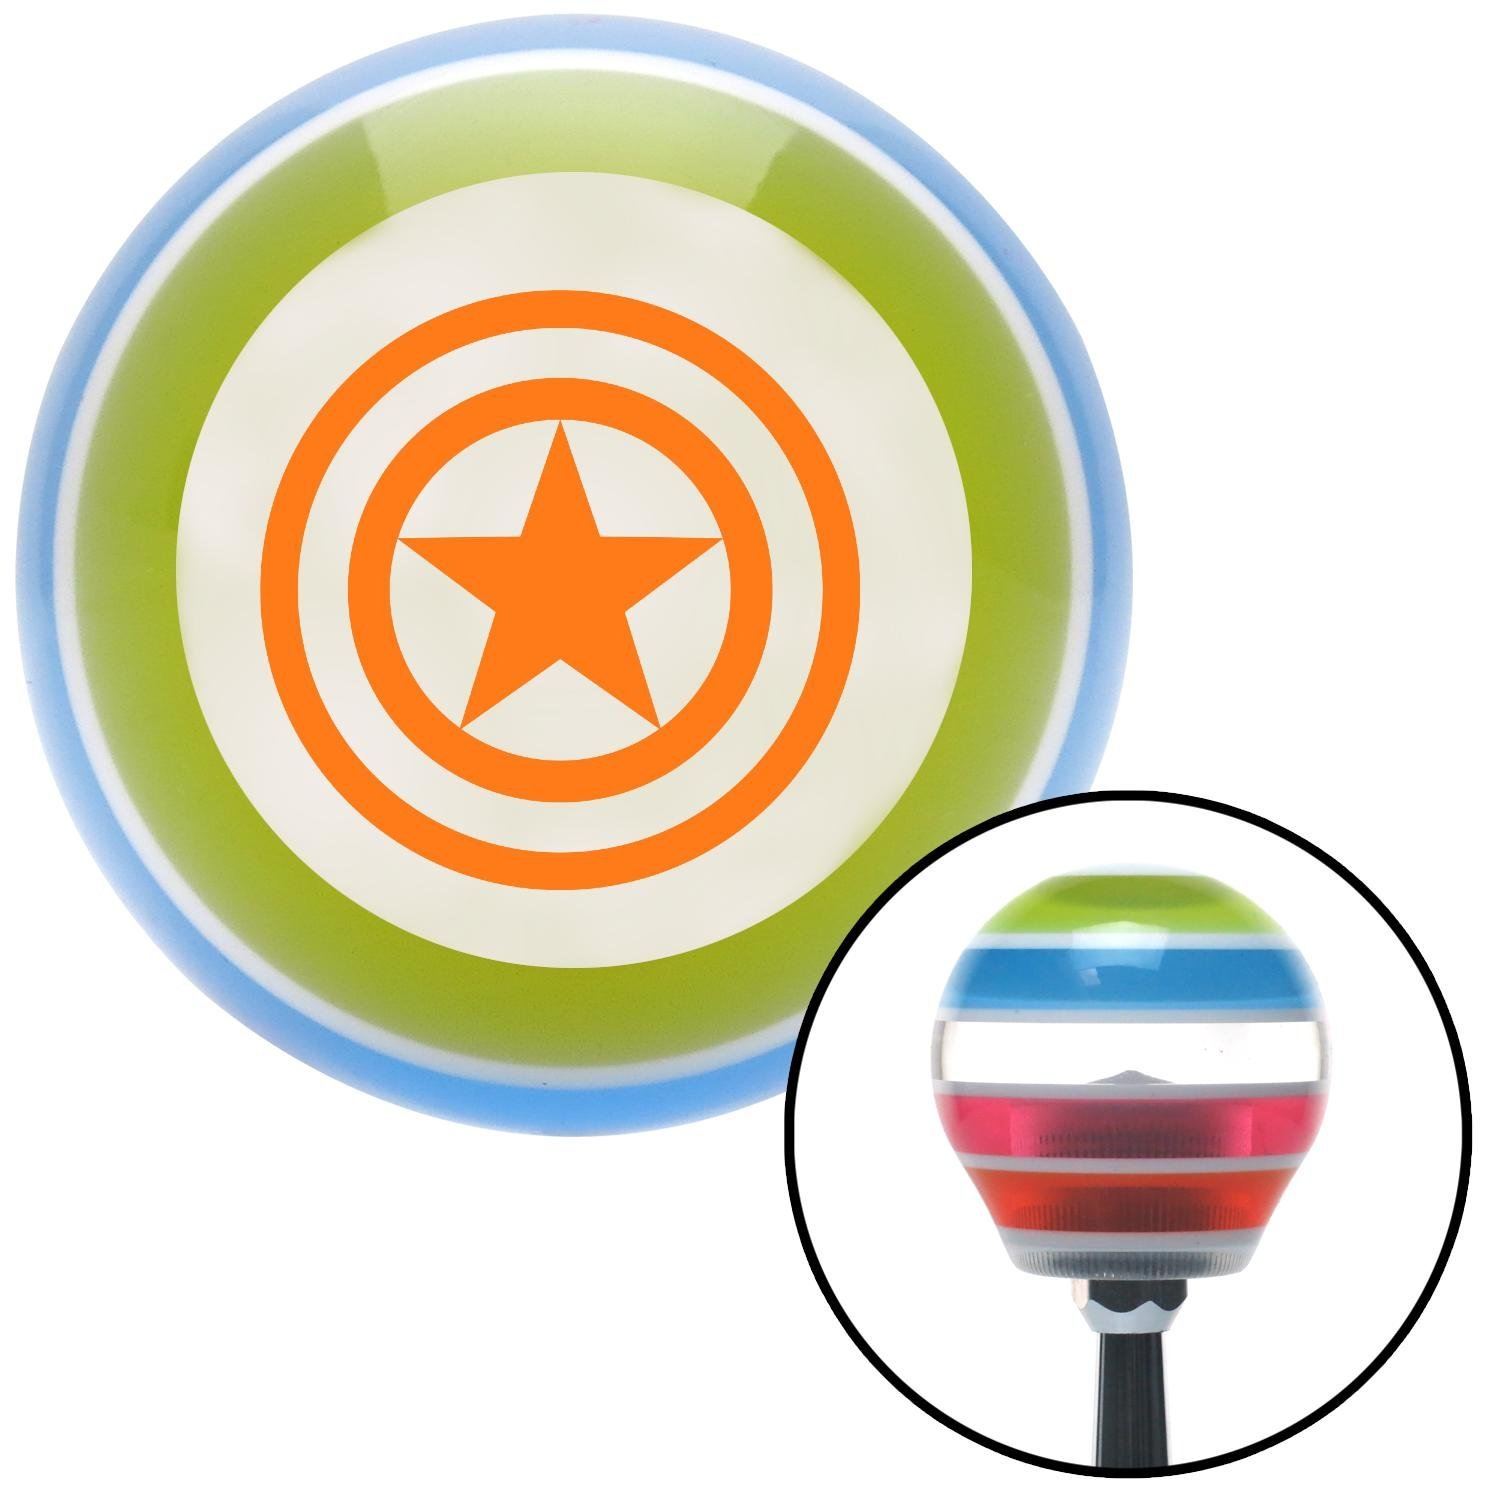 Orange Star Inside Circles American Shifter 134849 Stripe Shift Knob with M16 x 1.5 Insert